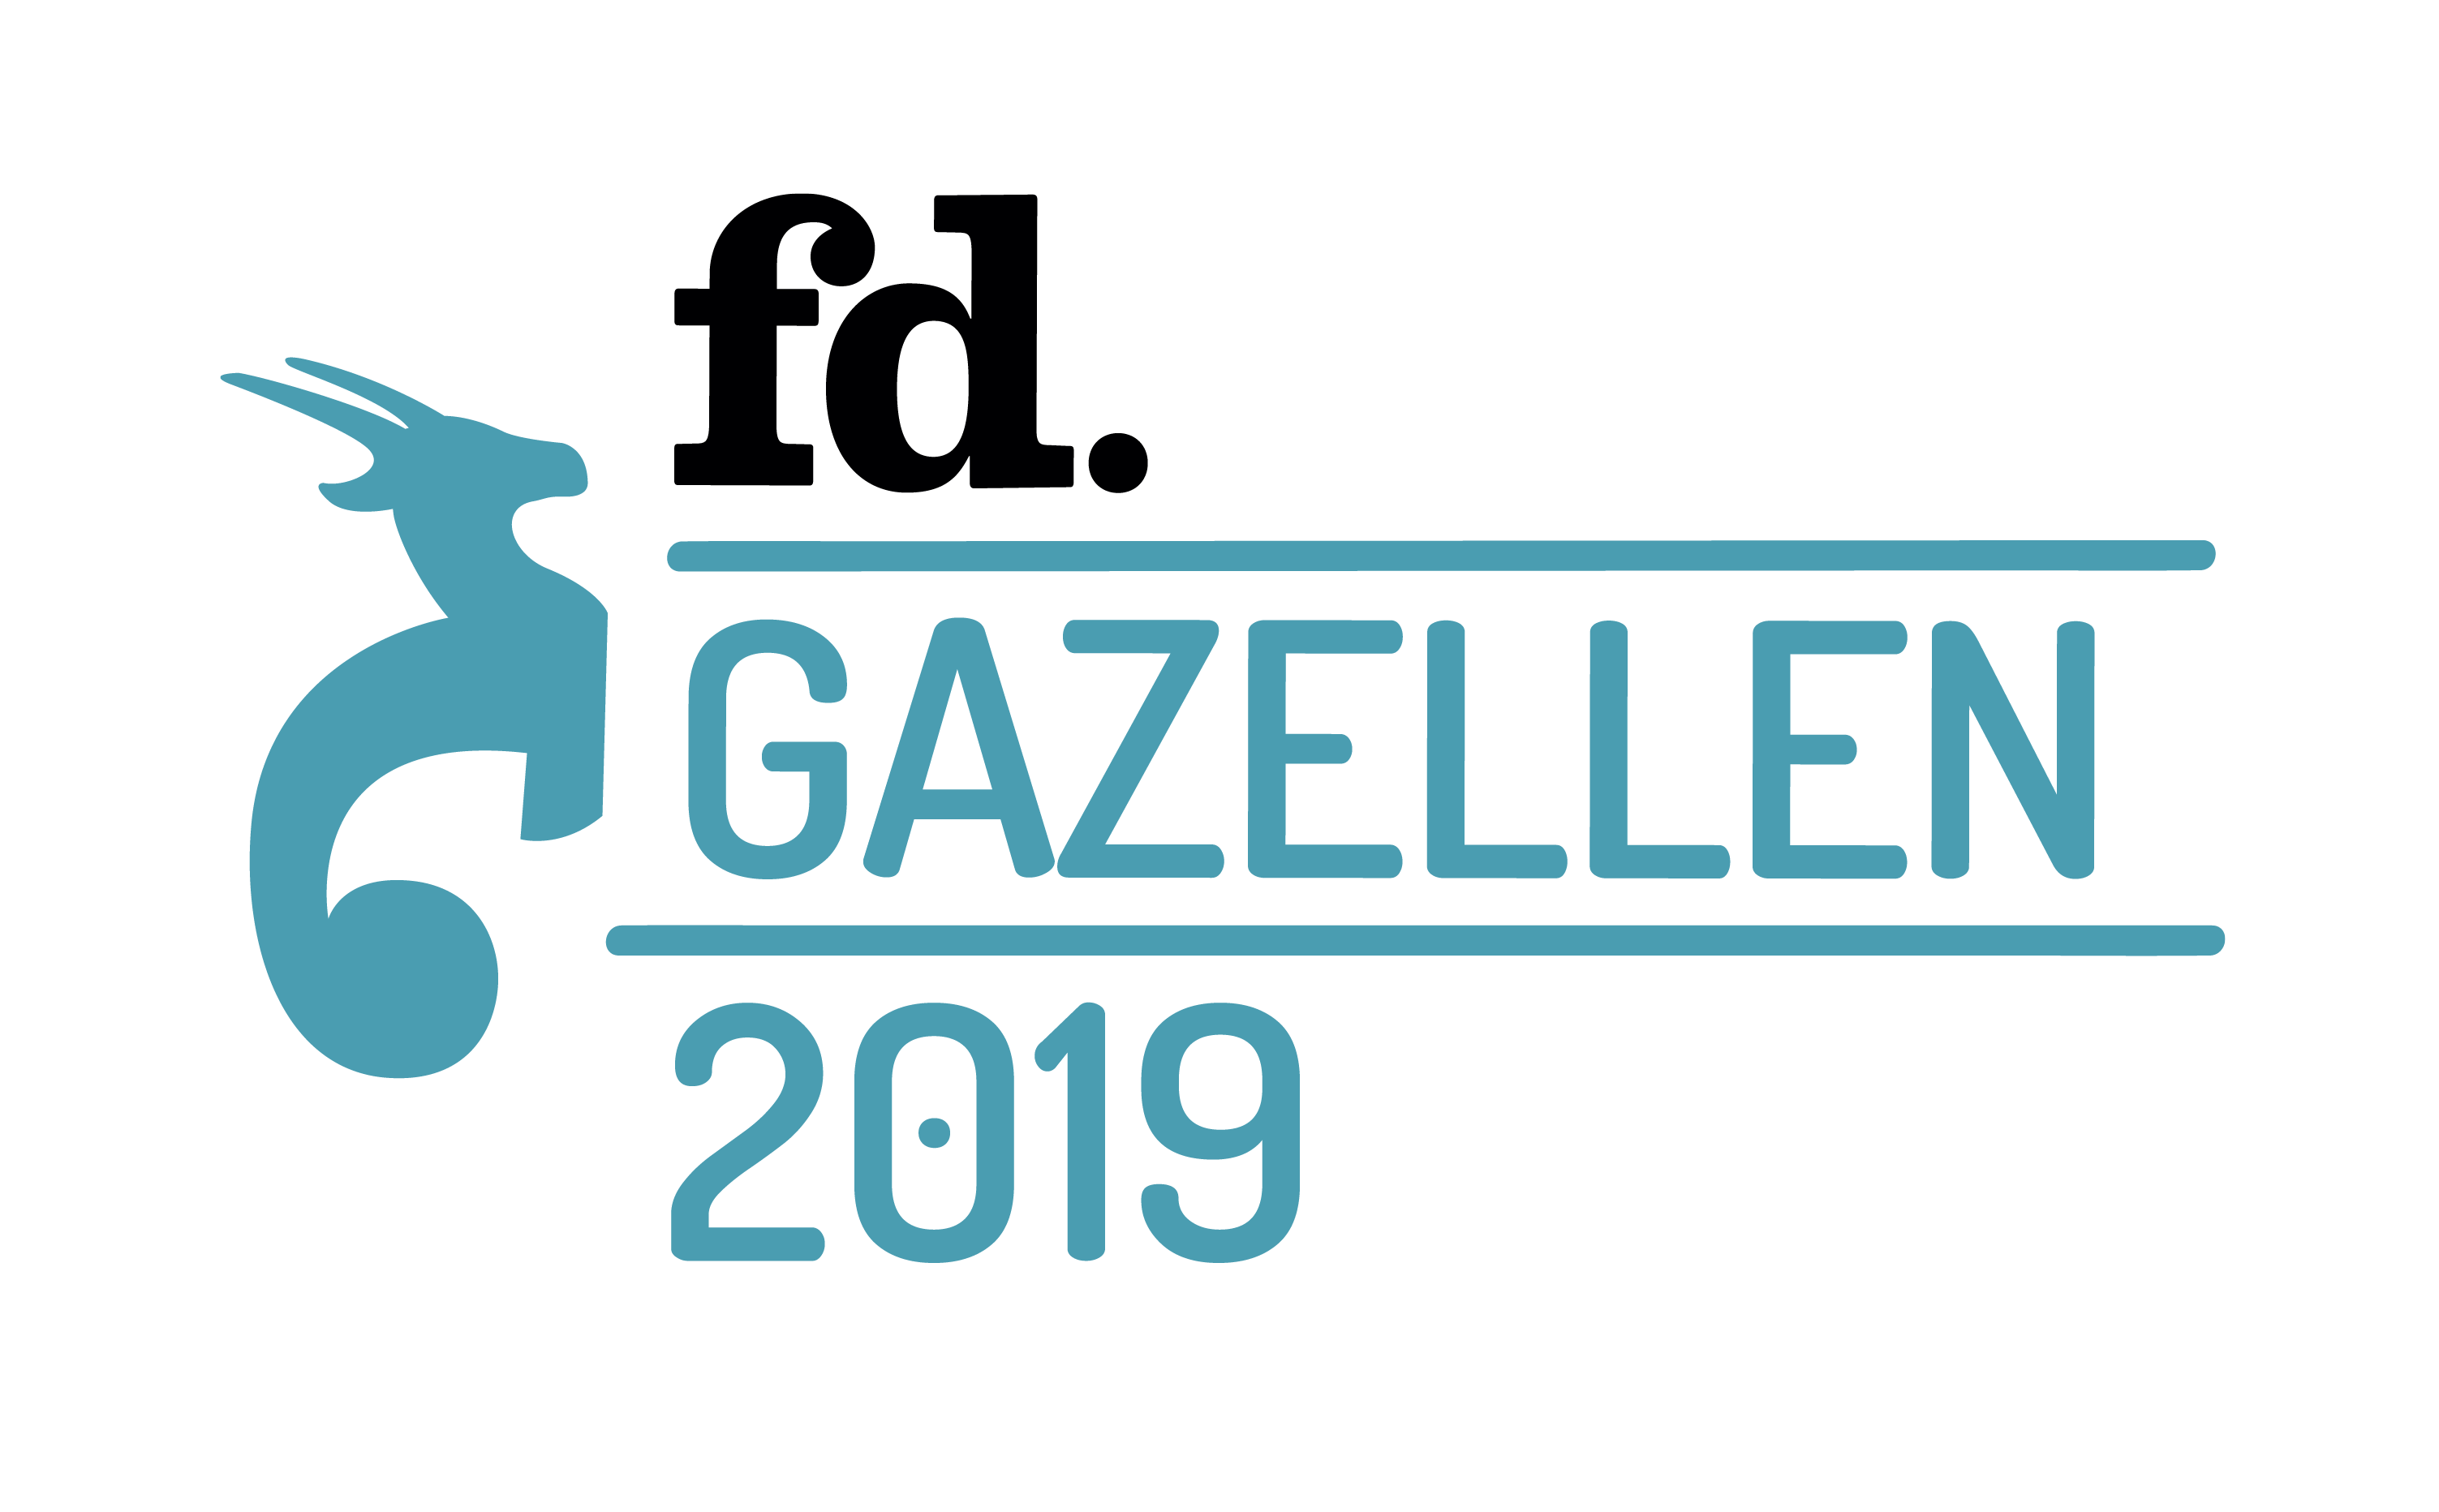 Heuvel Marketing wint FD Gazellen Award 2018